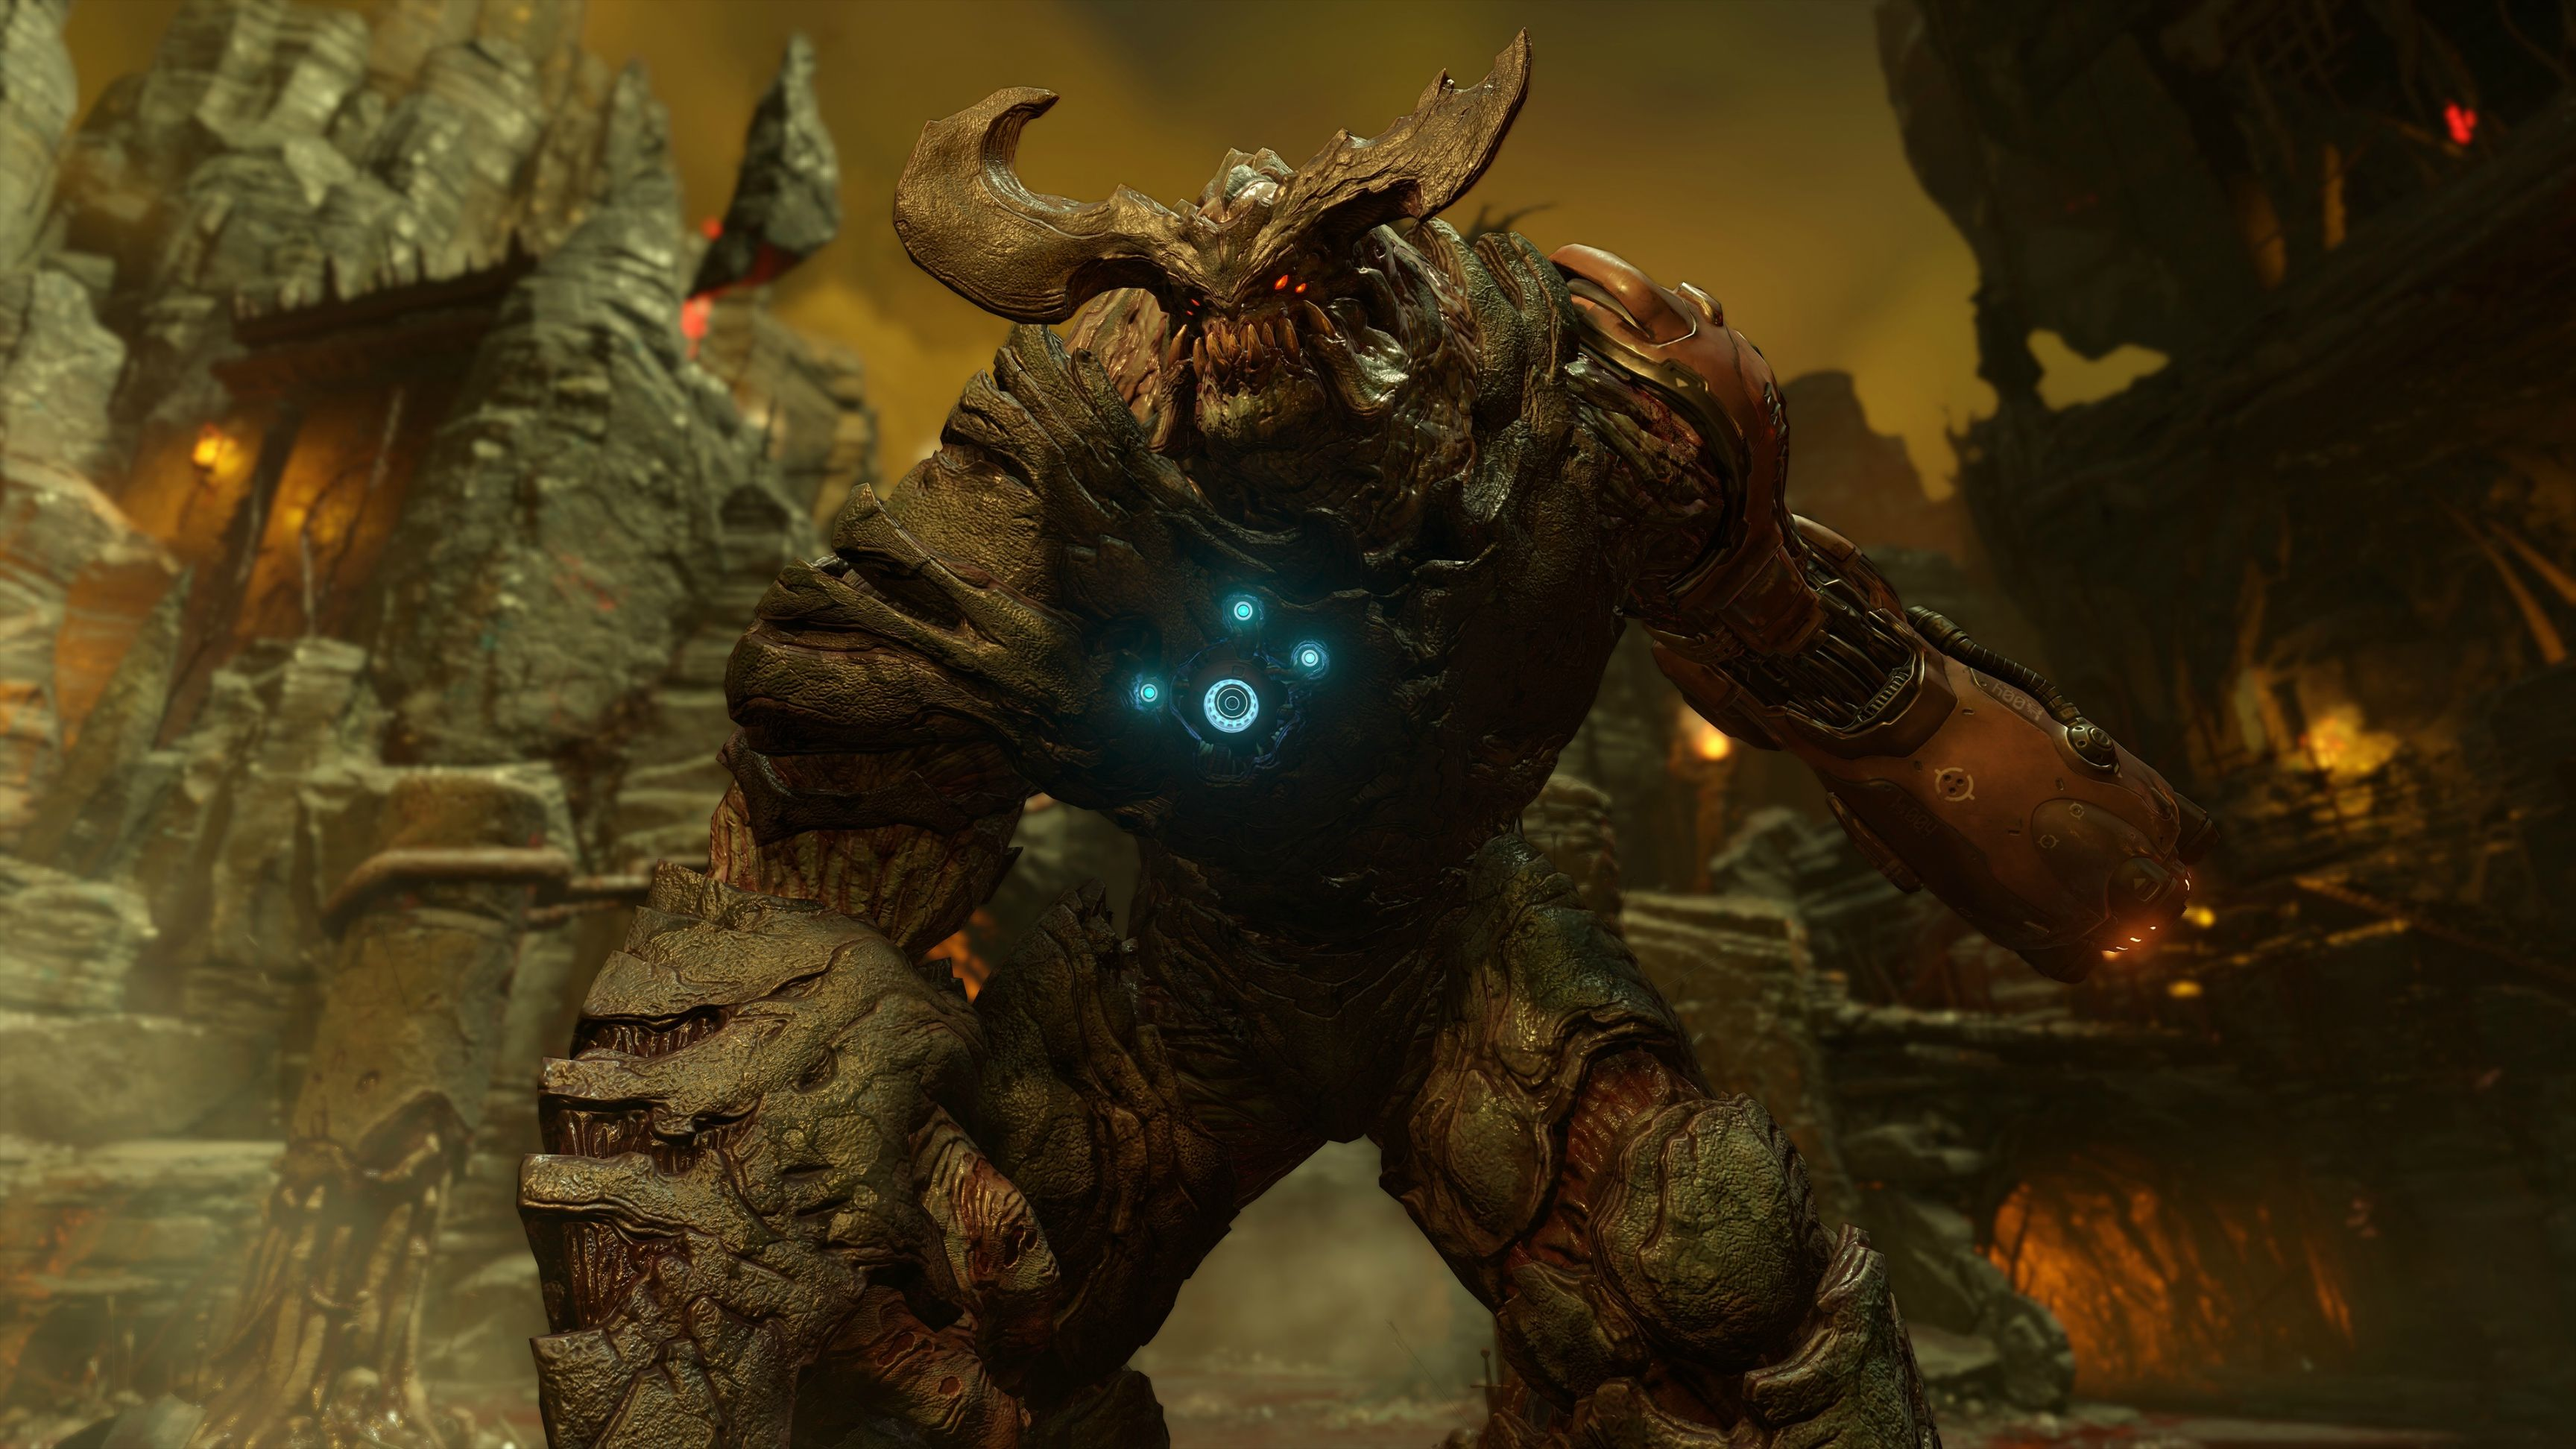 Bethesda Isn't Sending Out Early Review Copies Of Doom